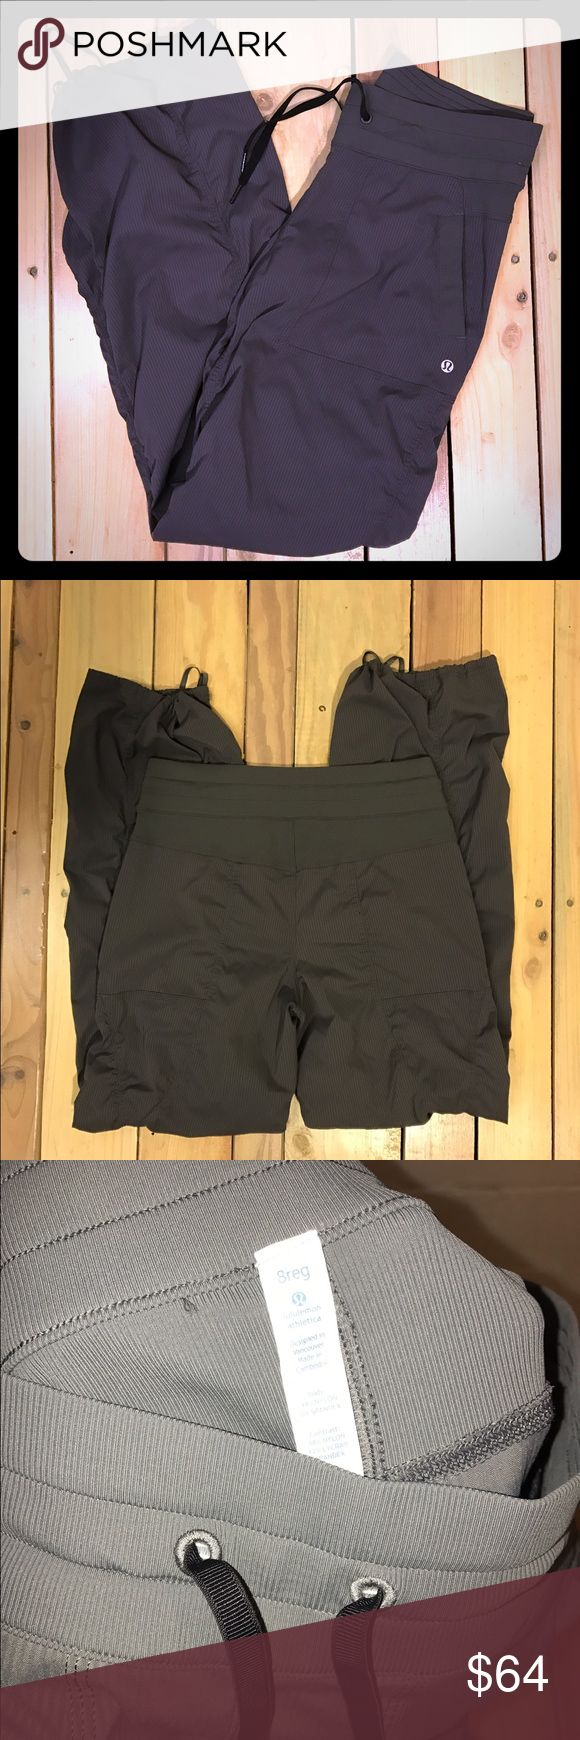 Lululemon workout pants sz 8 slate grey Great condition.  No stains, tears, or holes  •I bundle & discount bundles •If an item is higher than you want to pay, message an offer or favorite & wait for price to drop weekly.  •My mannequin is Xsm so sometimes items appear loose or I clip back for actual look/fit •Usually ships within 24 hrs and latest 48 hours unless otherwise noted.  •Some of my items are various sizes because I sell for sister as well. #lululemon #dancestudio #warmups…